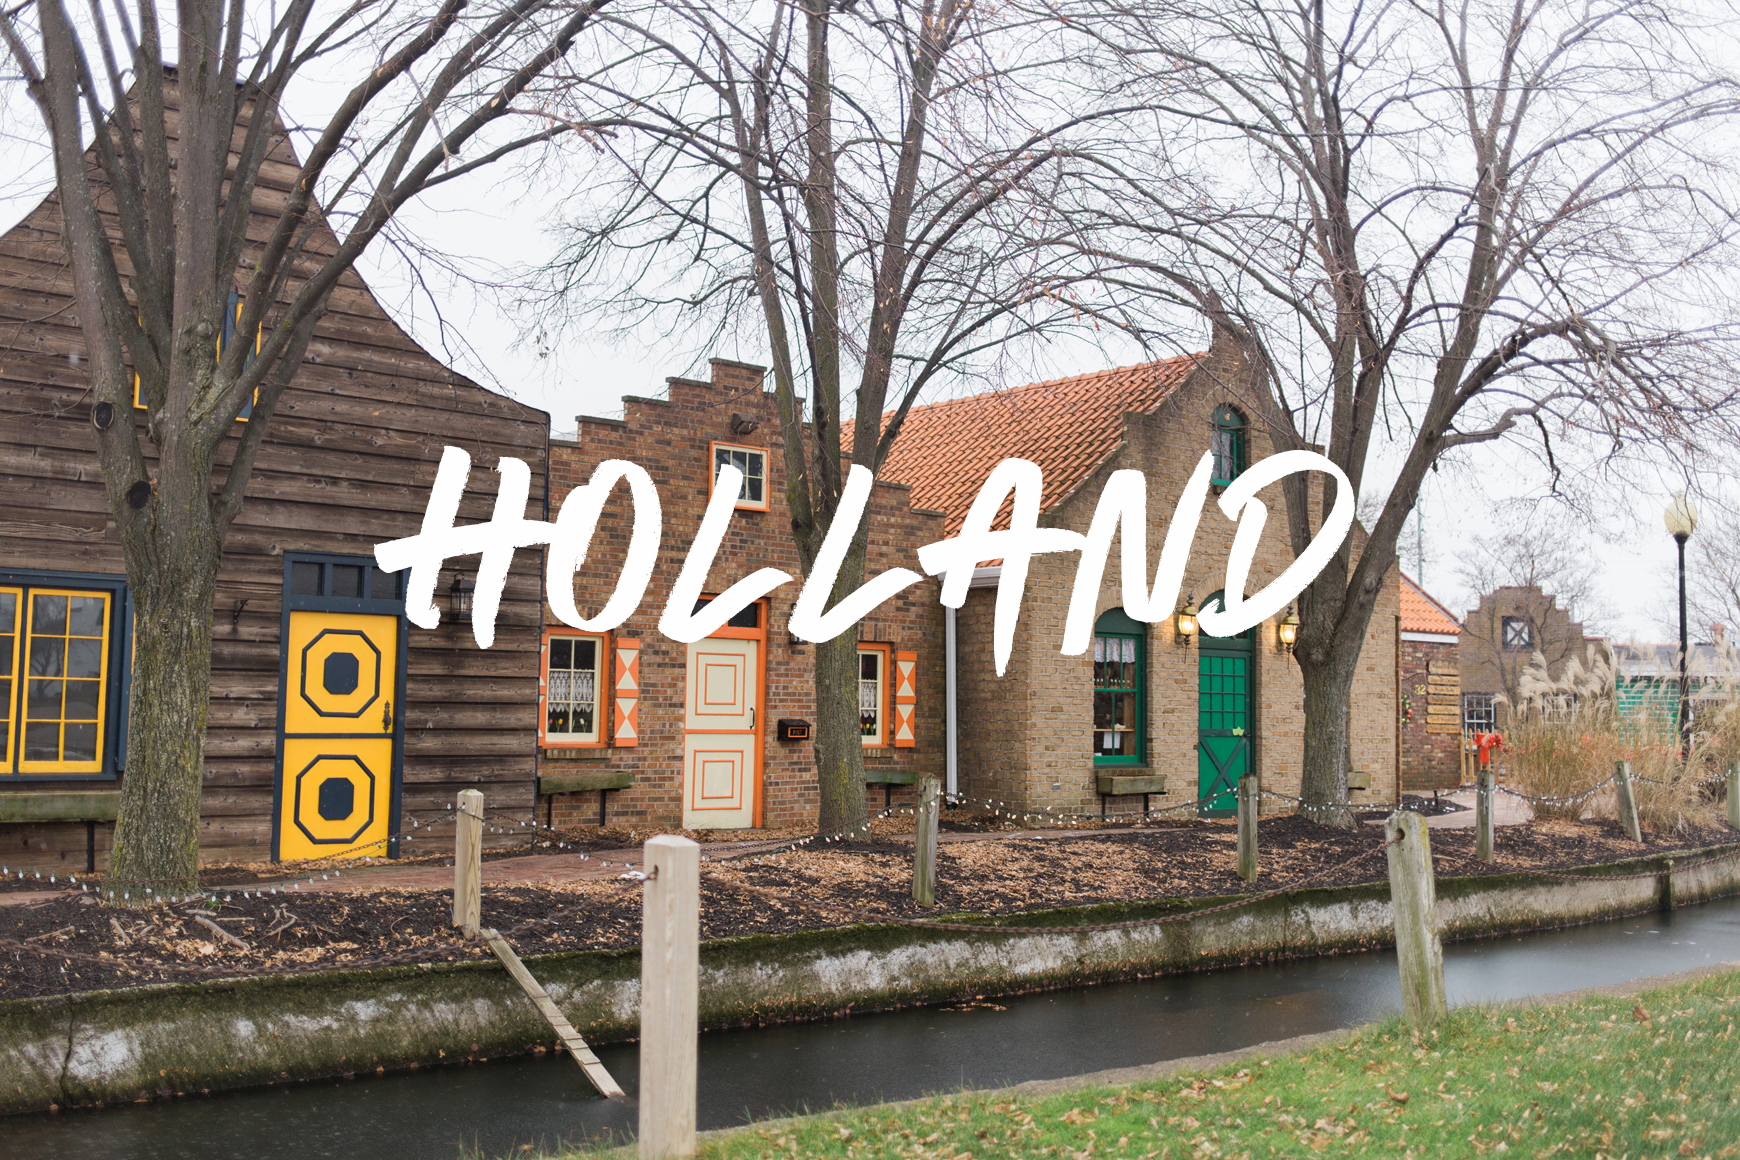 Dutch Villages, Holland/MI